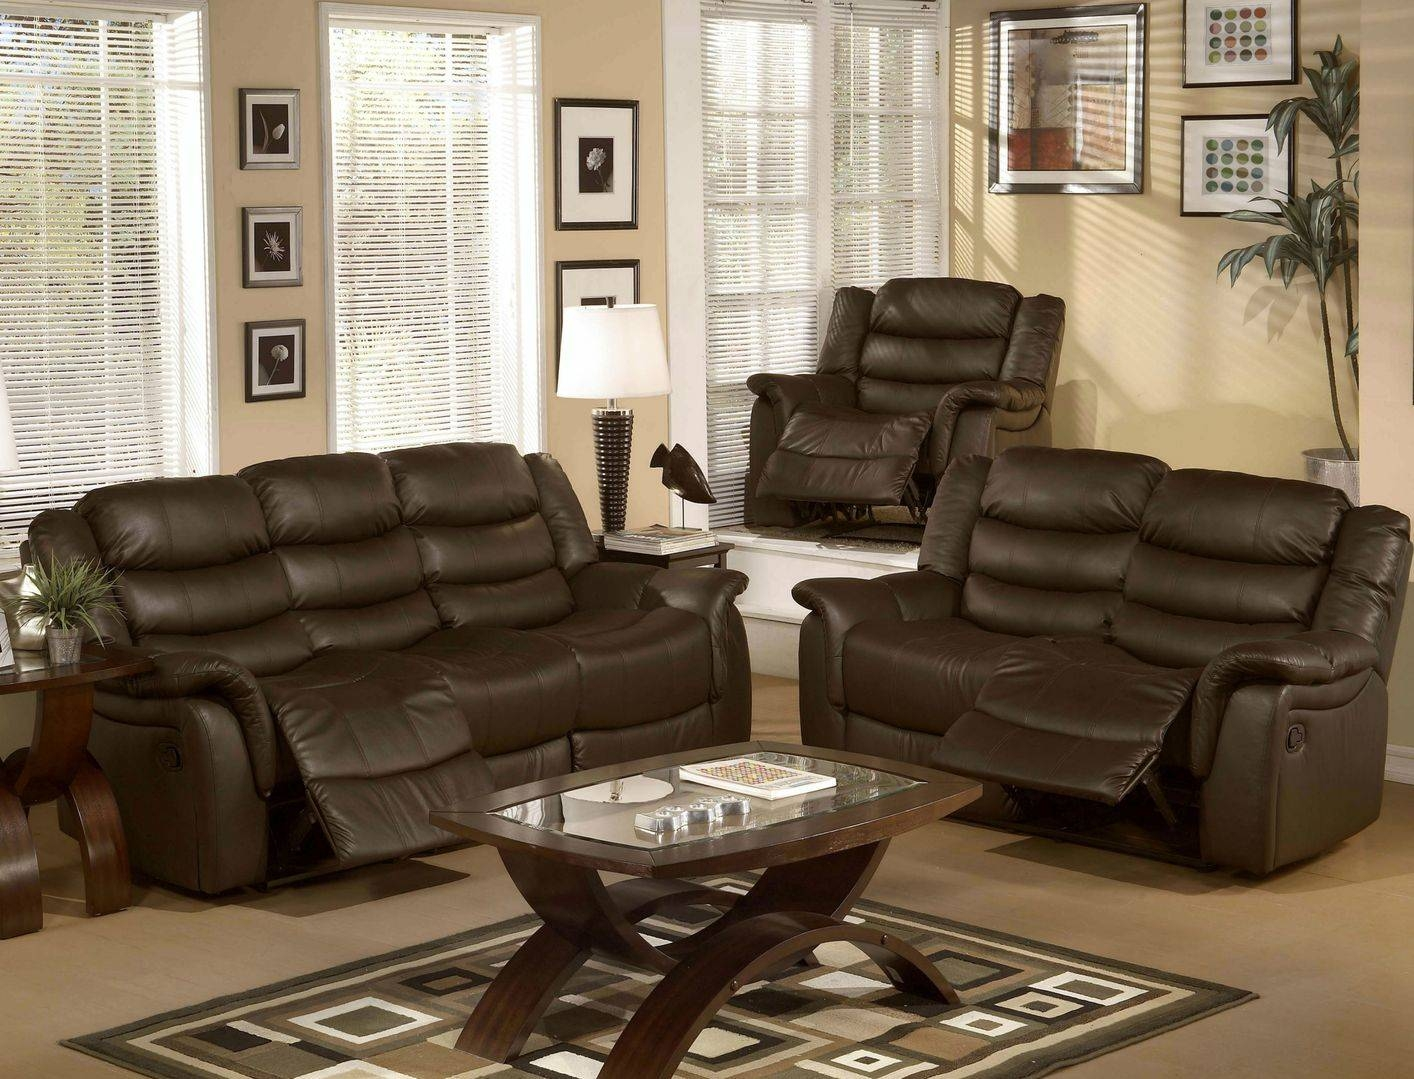 Some Types Sofa And Chair Set — Home Ideas Collection inside Sofa and Chair Set (Image 29 of 30)